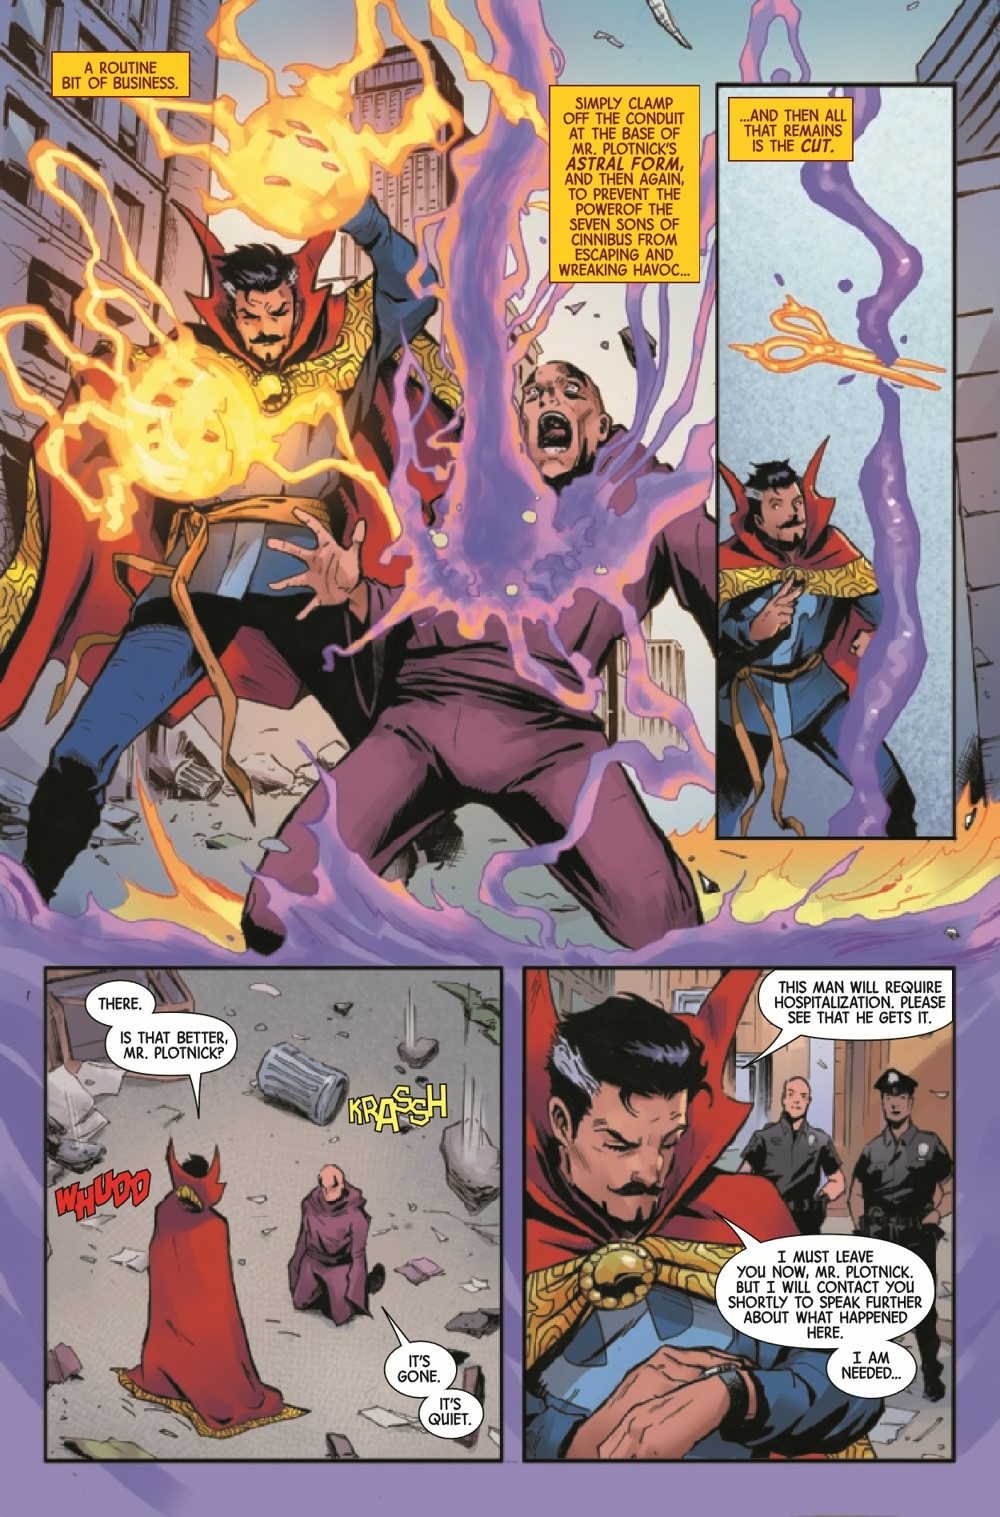 DRSDEATH2021001_Preview-6 ComicList Previews: DEATH OF DOCTOR STRANGE #1 (OF 5)